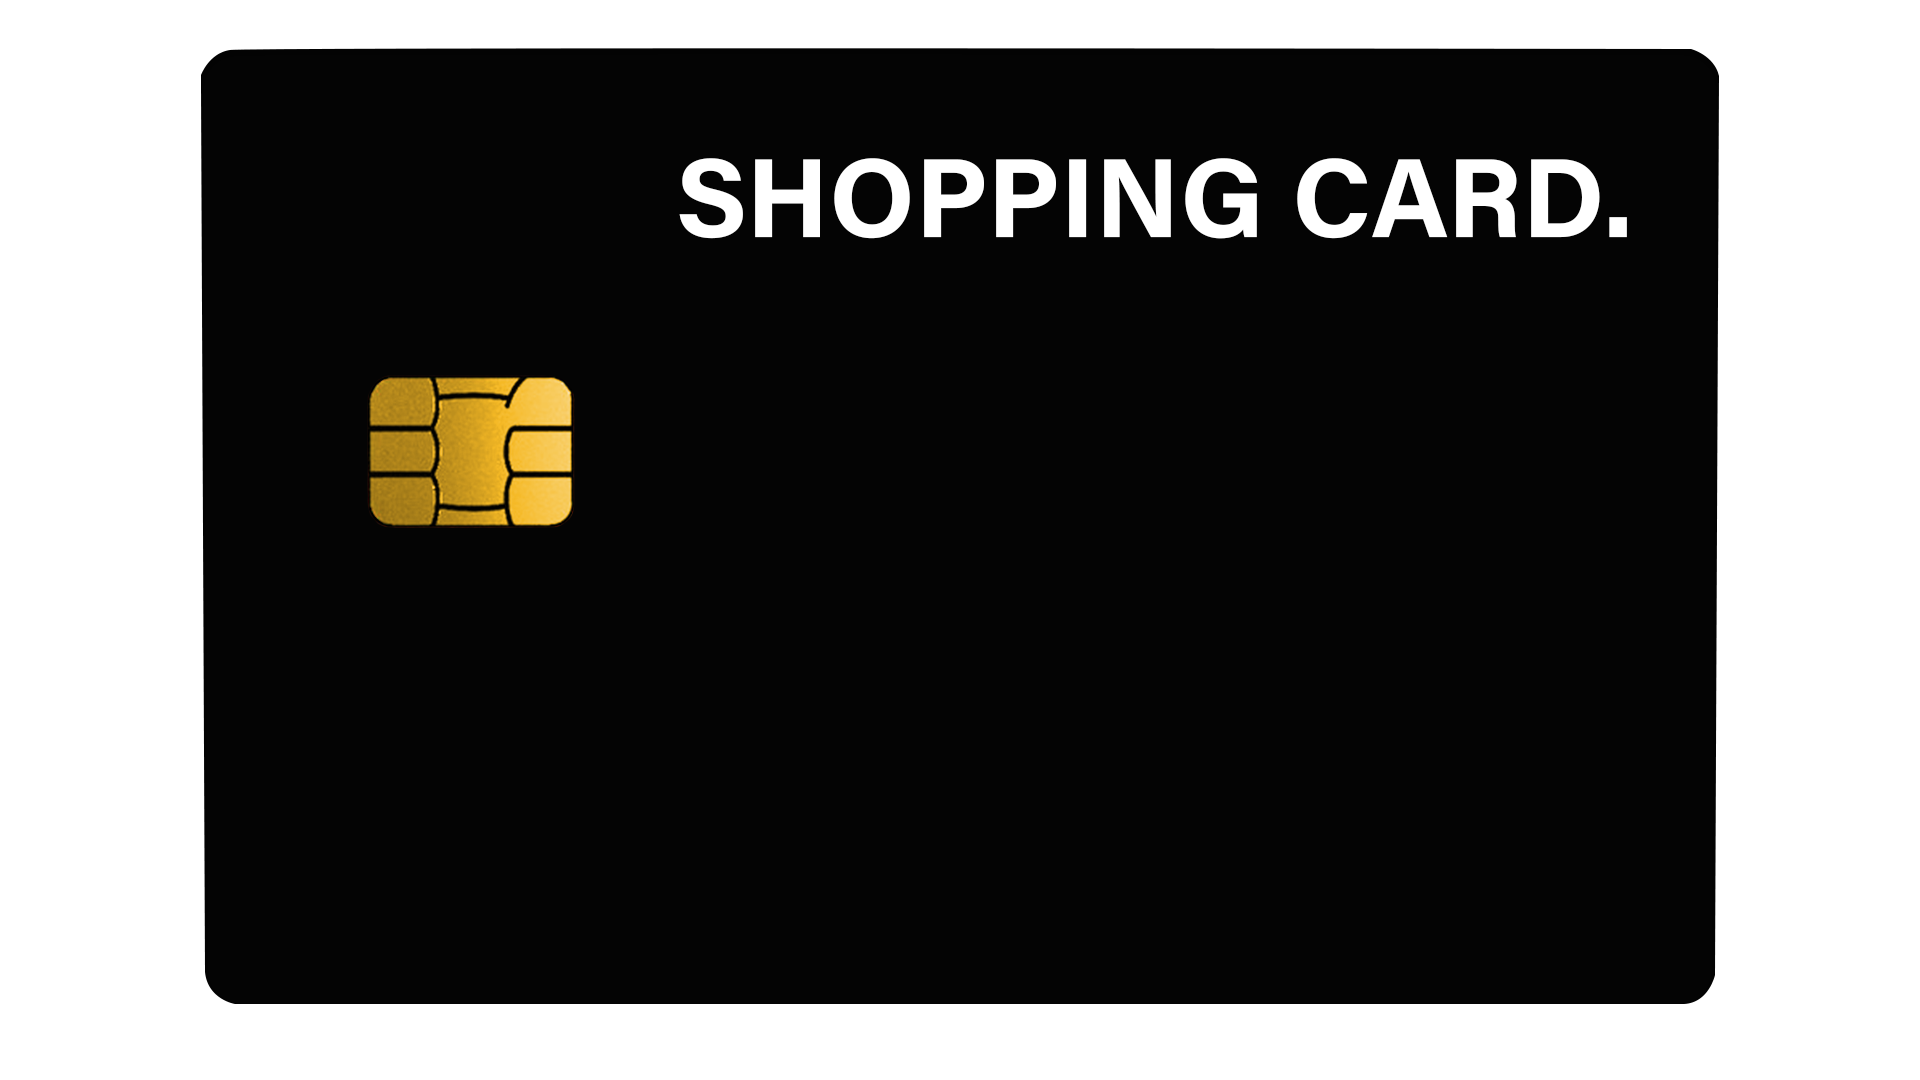 Shopping Card - Passticker